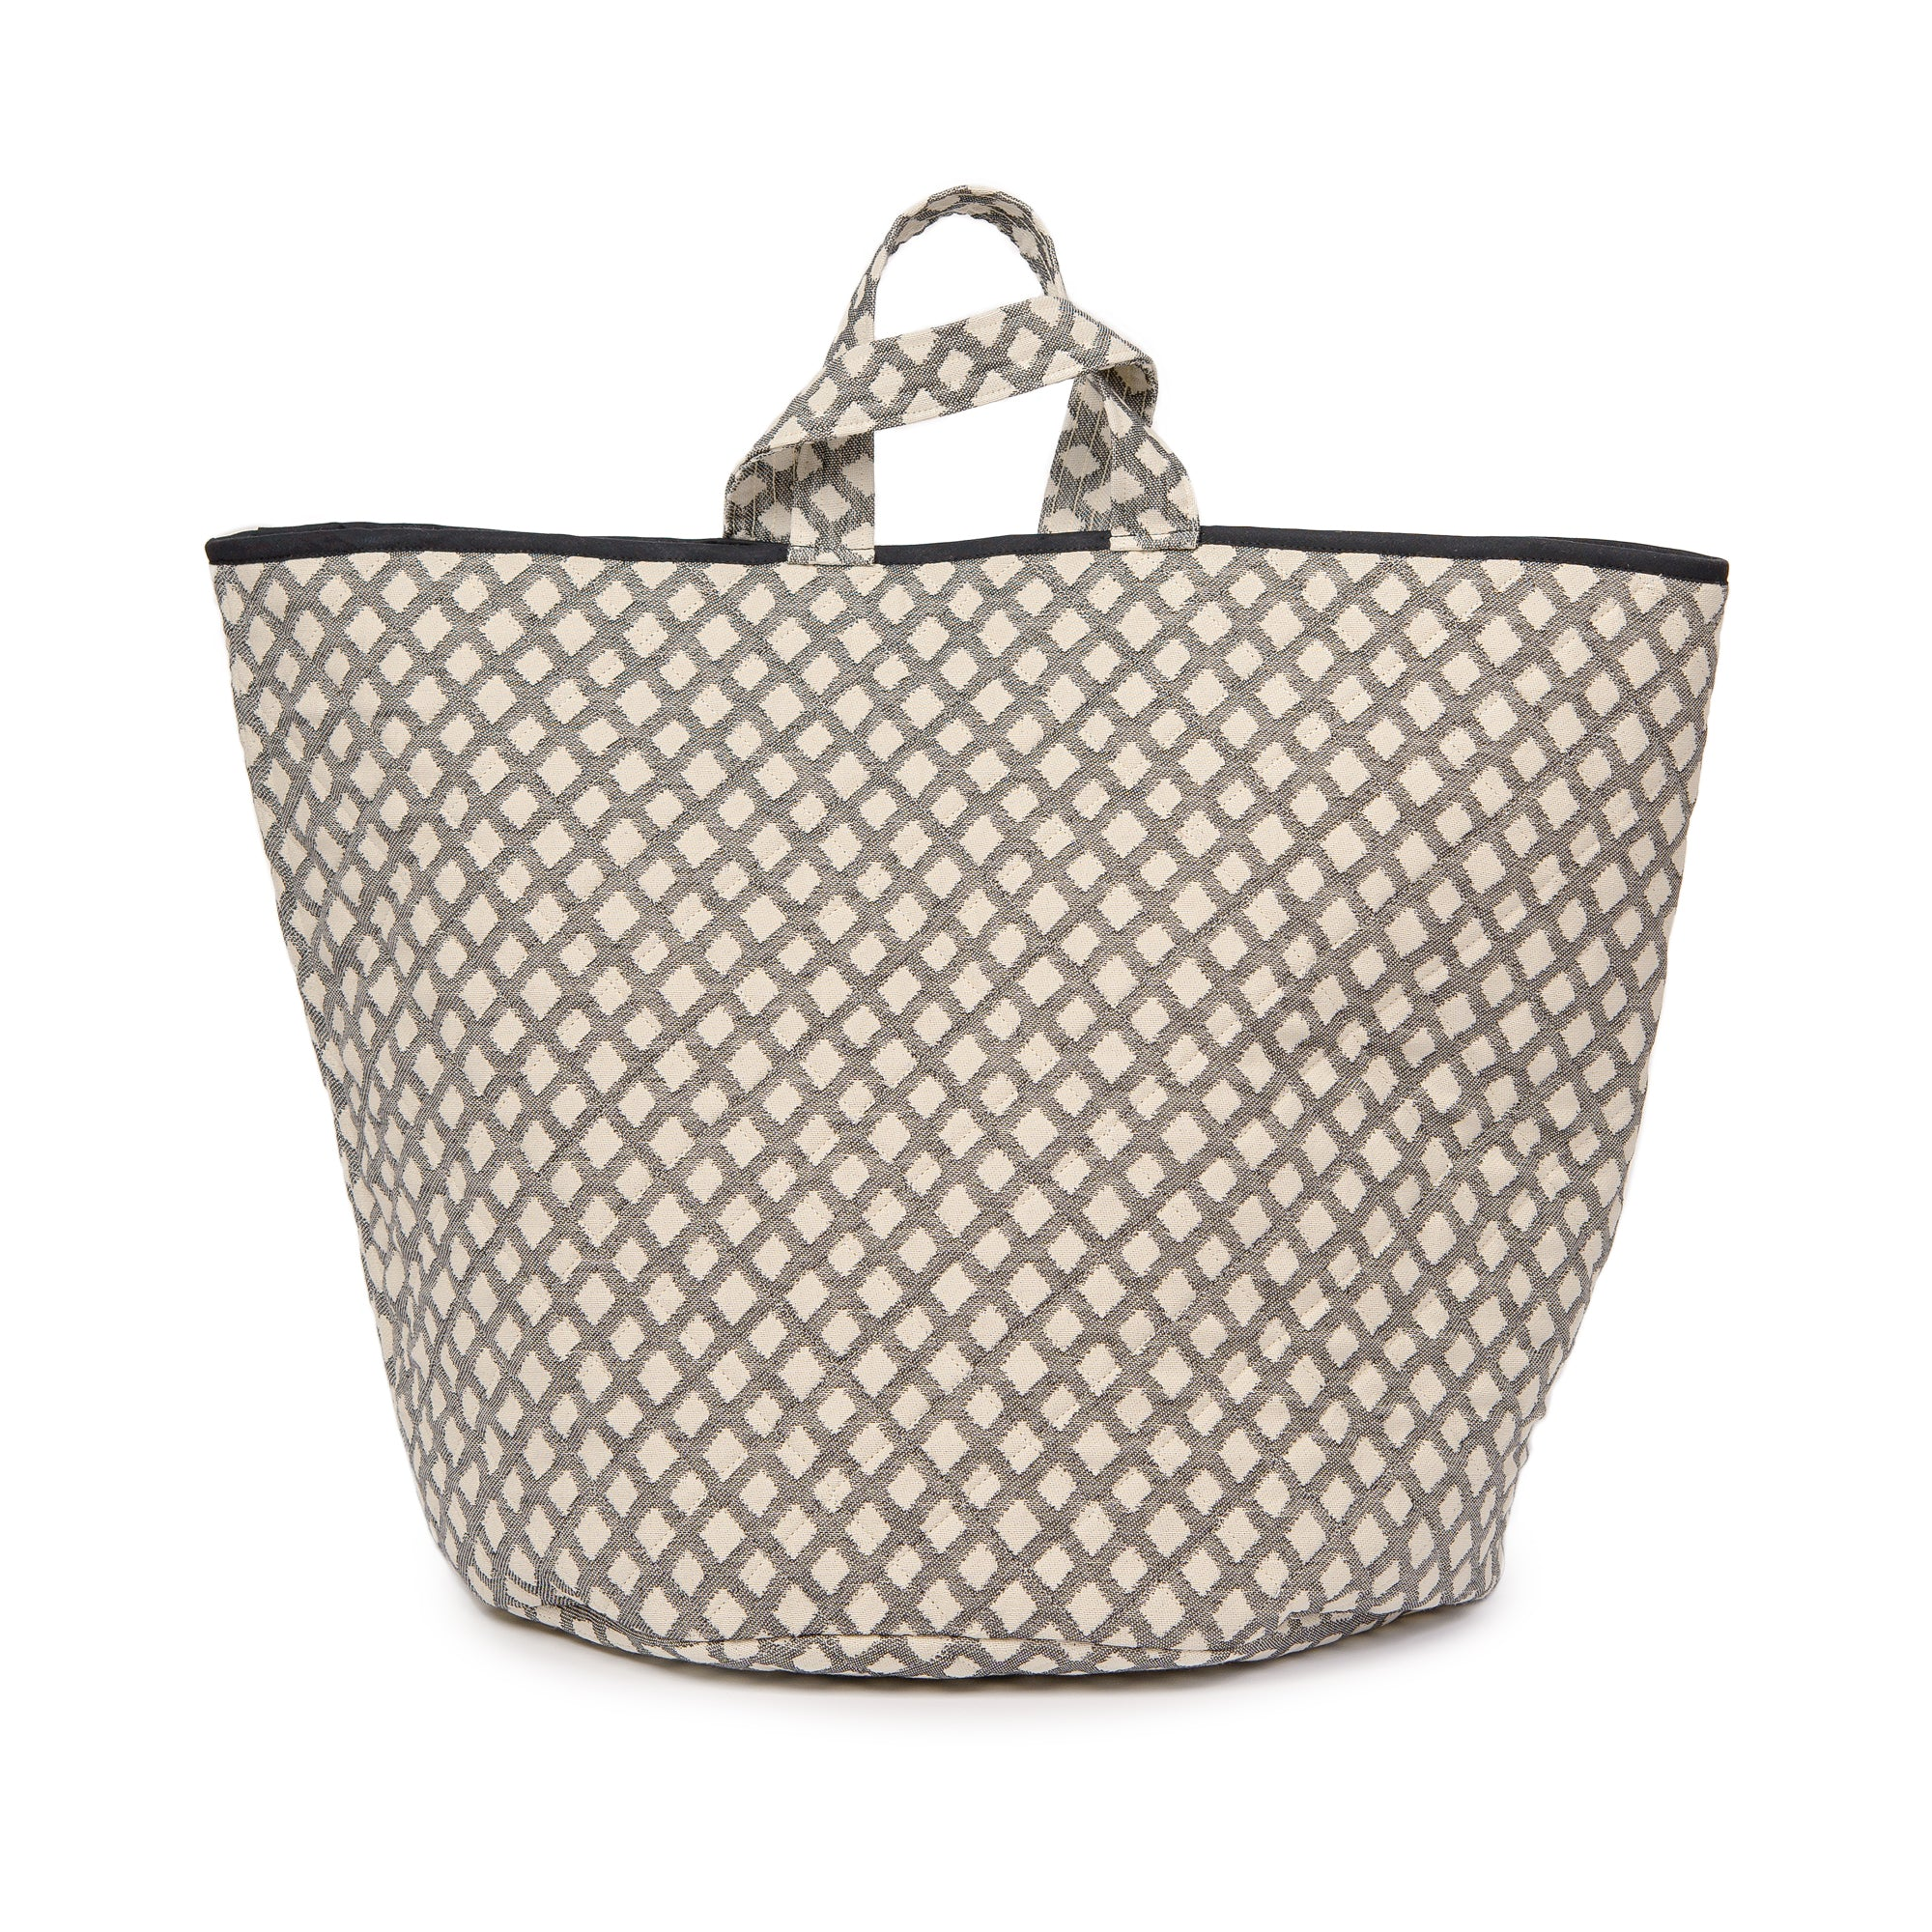 Cadogan Check Storage Basket Black